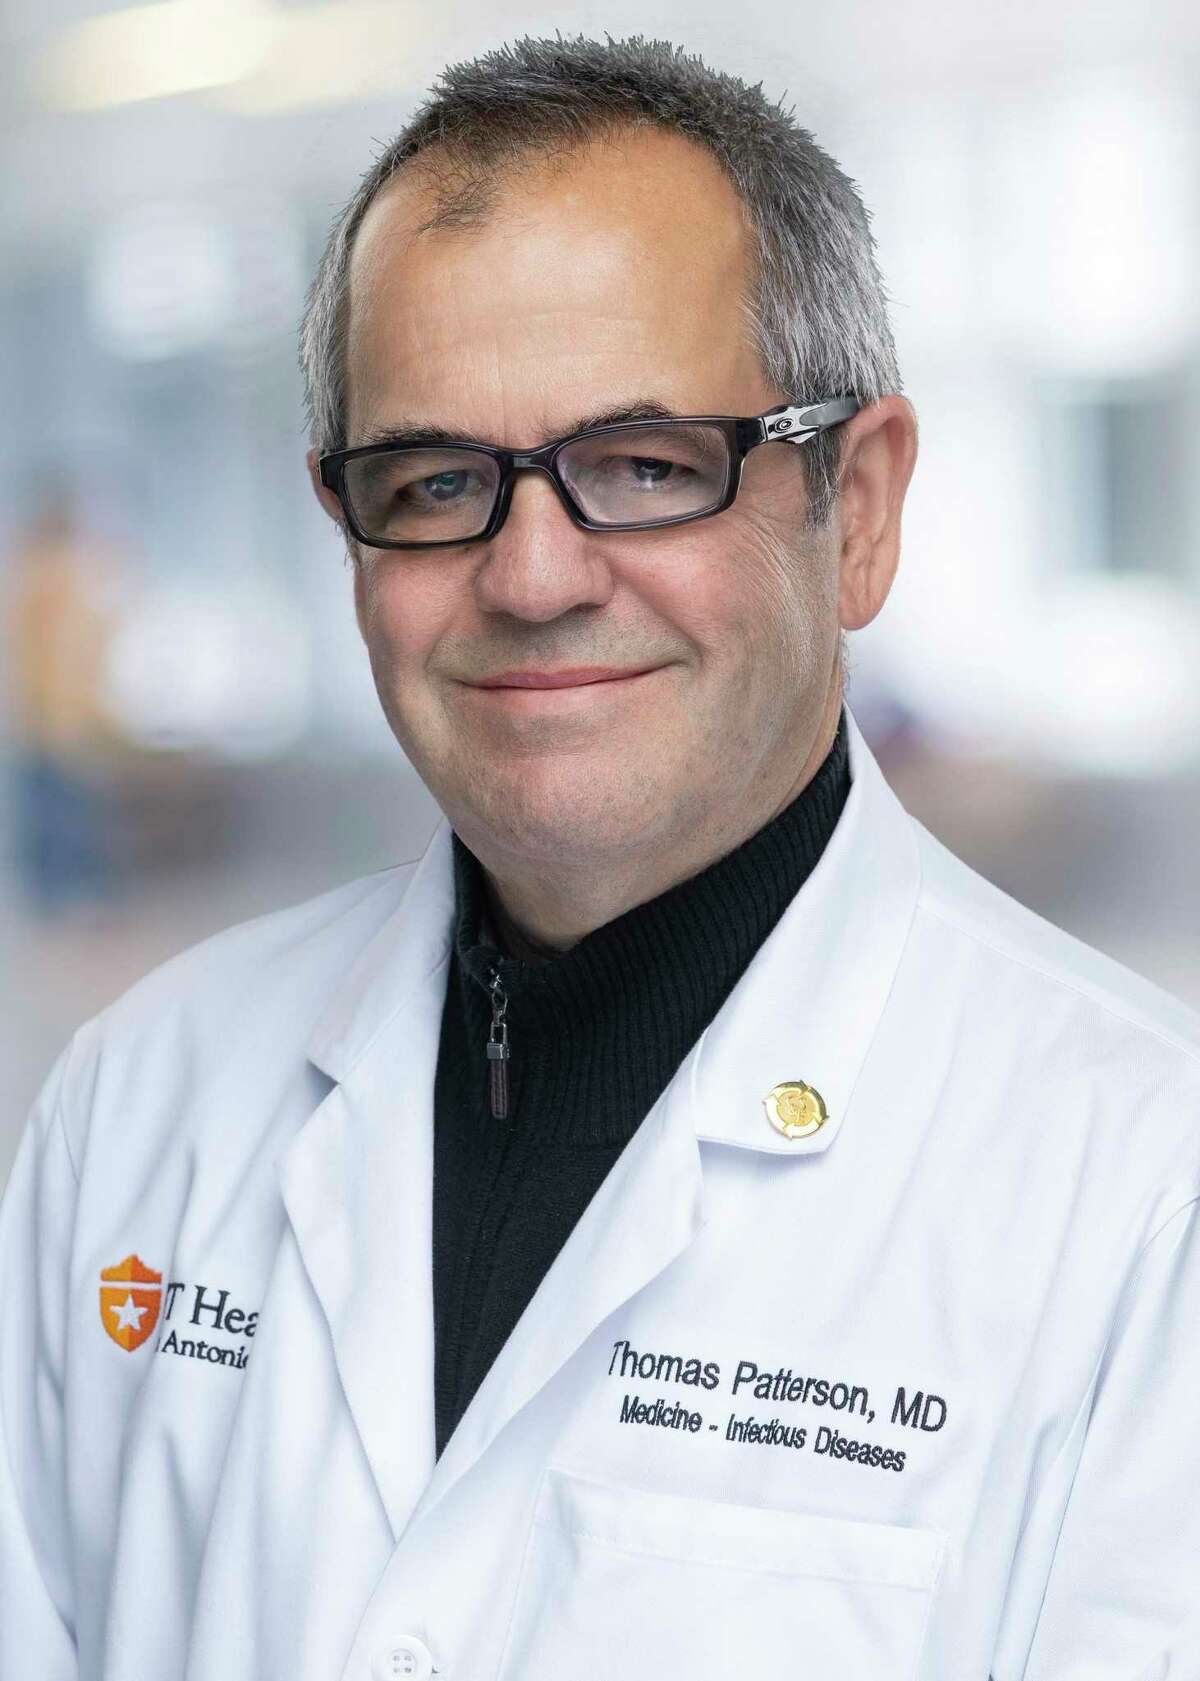 Dr. Thomas Petterson, chief of the Division of Infectious Diseases at UT Health San Antonio, is a leader of a clinical trial at University Hospital to test the effectiveness of remdesivir as a treatment for the novel coronavirus.